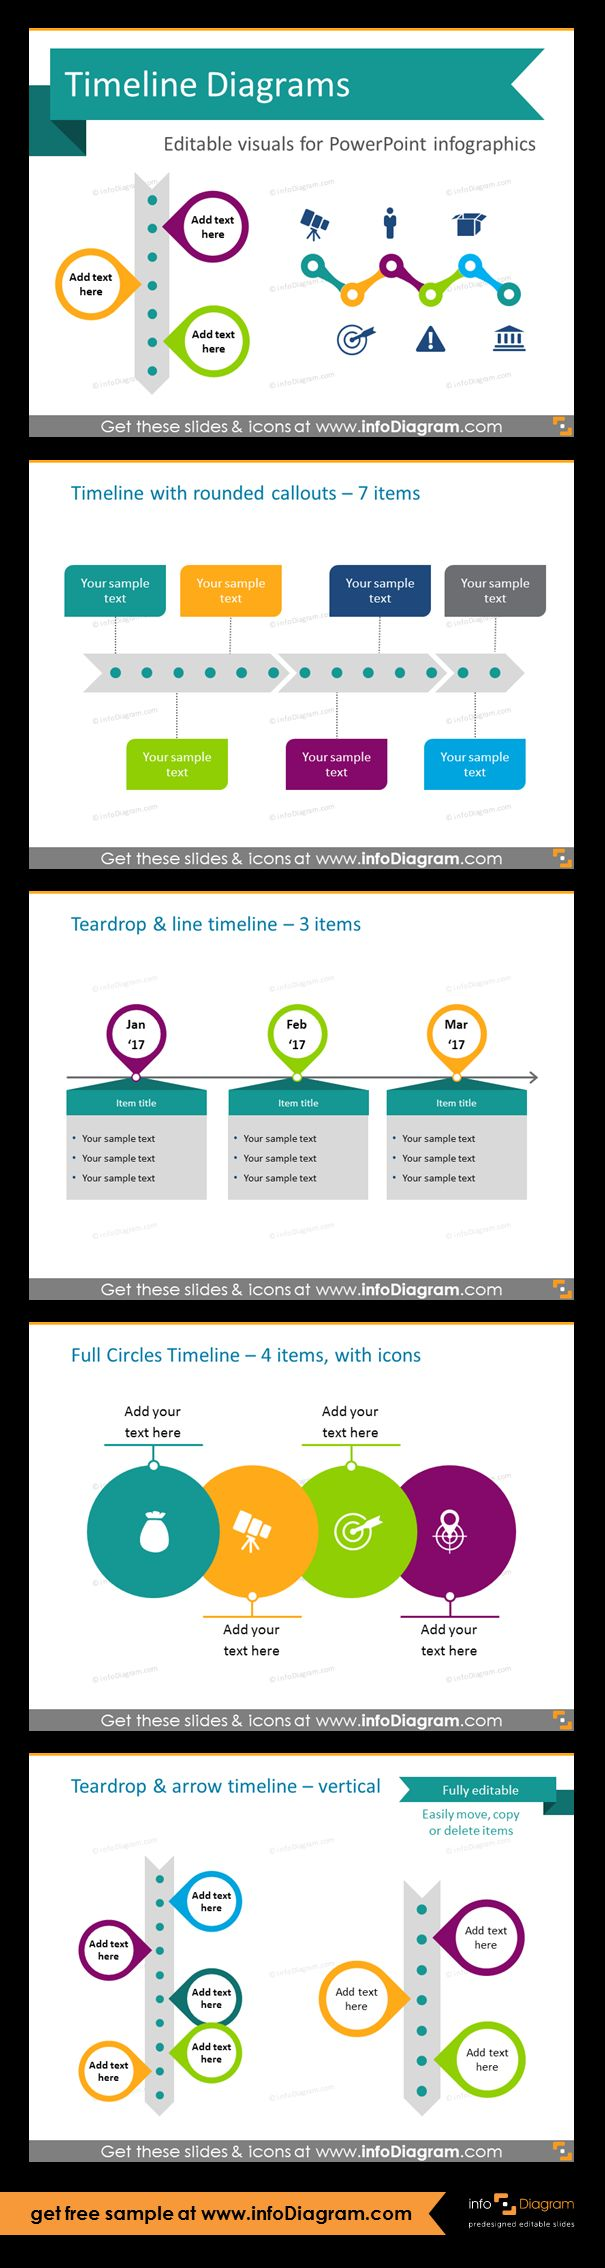 Template slides for Timeline diagrams and Time infographics. Editable PowerPoint graphics for showing history, agenda, linear process flow charts, project timelines, planning phases and roadmaps by modern infographics. Timeline with rounded callouts, teardrop and line, full circles timelines. Replace default tables and ordered lists with more visual timeline arrows.